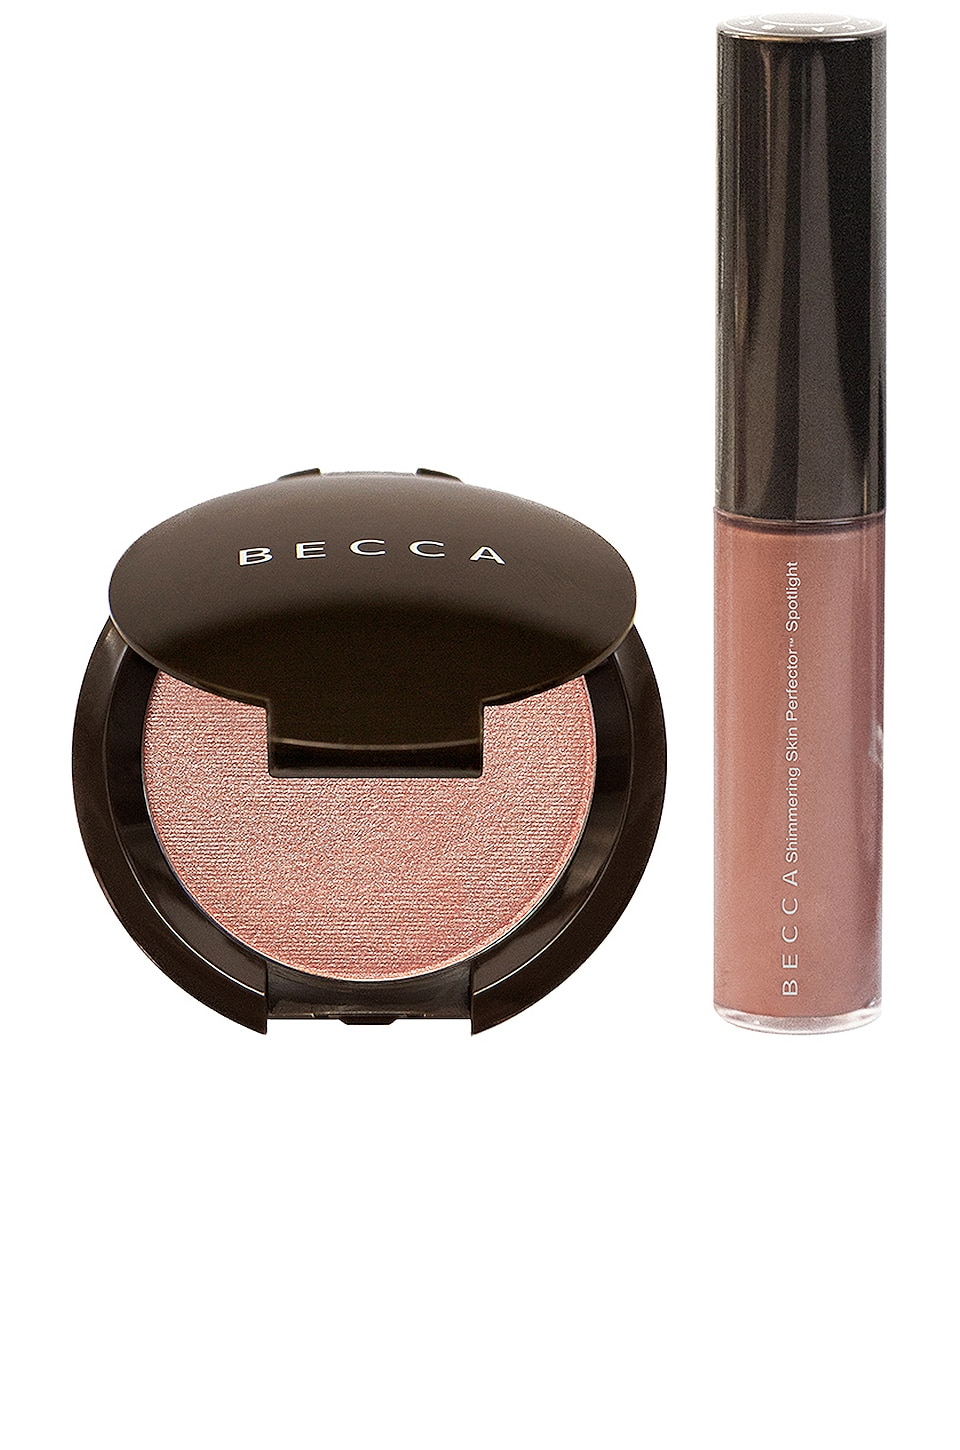 BECCA KIT FACIAL GLOW ON THE GO